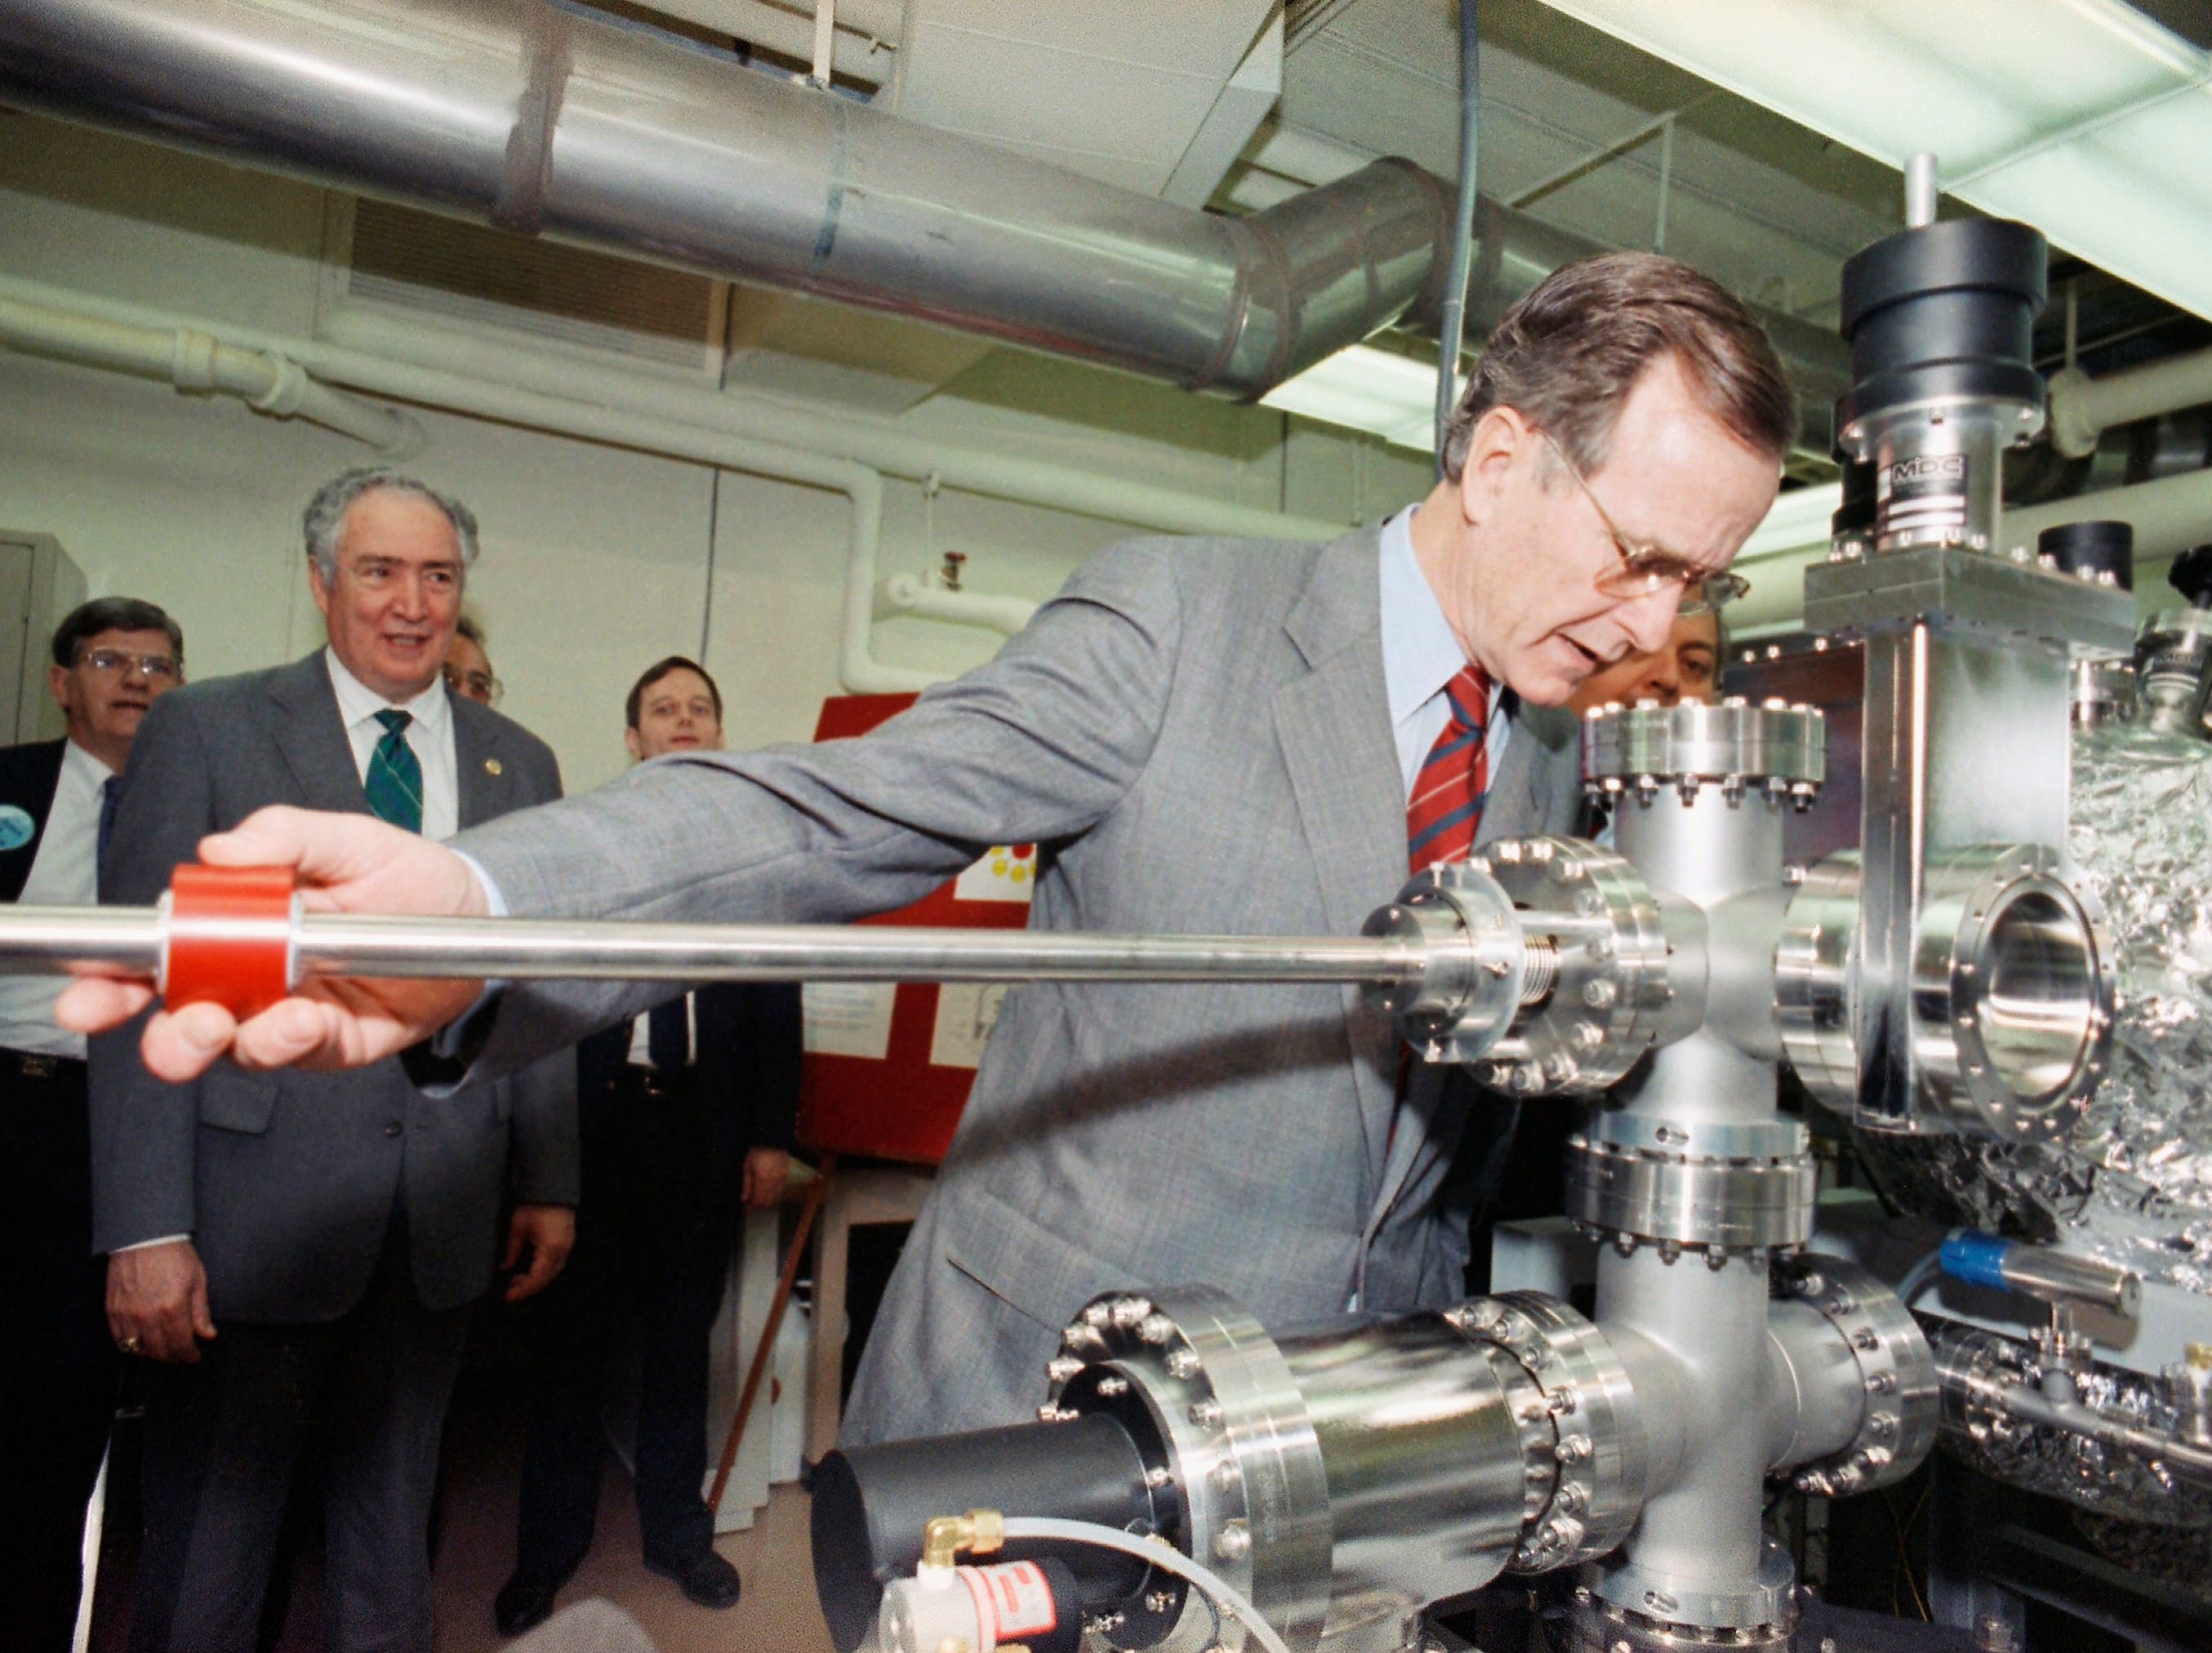 President George H.W. Bush looks through a ultraviolet photo emission spectrometer during a tour of a physics lab at North Carolina State University in Raleigh, N.C., on Friday, Feb. 2, 1990. (AP Photo/Dennis Cook)